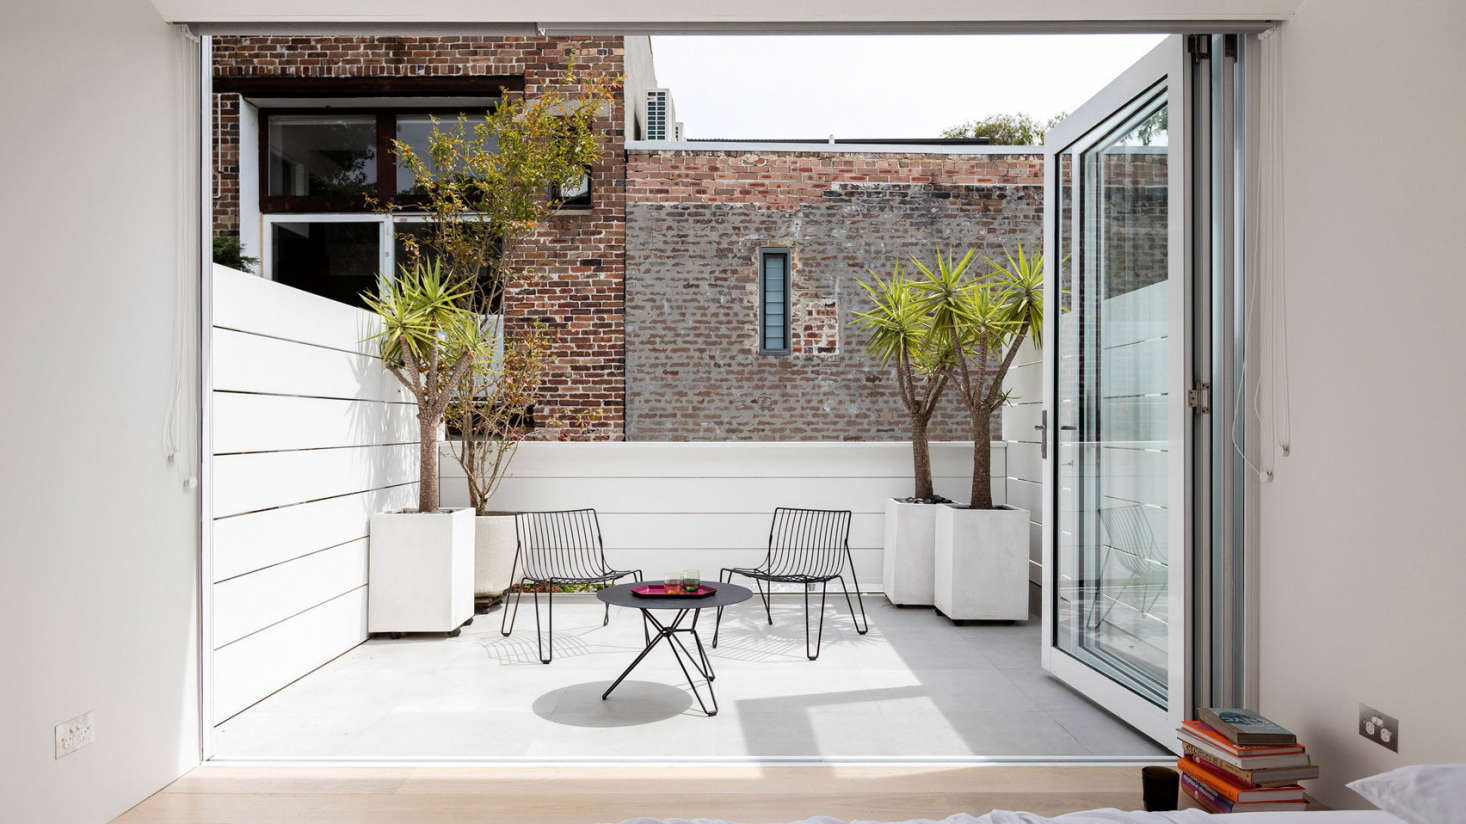 One floor above the kitchen, the master bedroom opens onto a terrace that overlooks the kitchen courtyard.